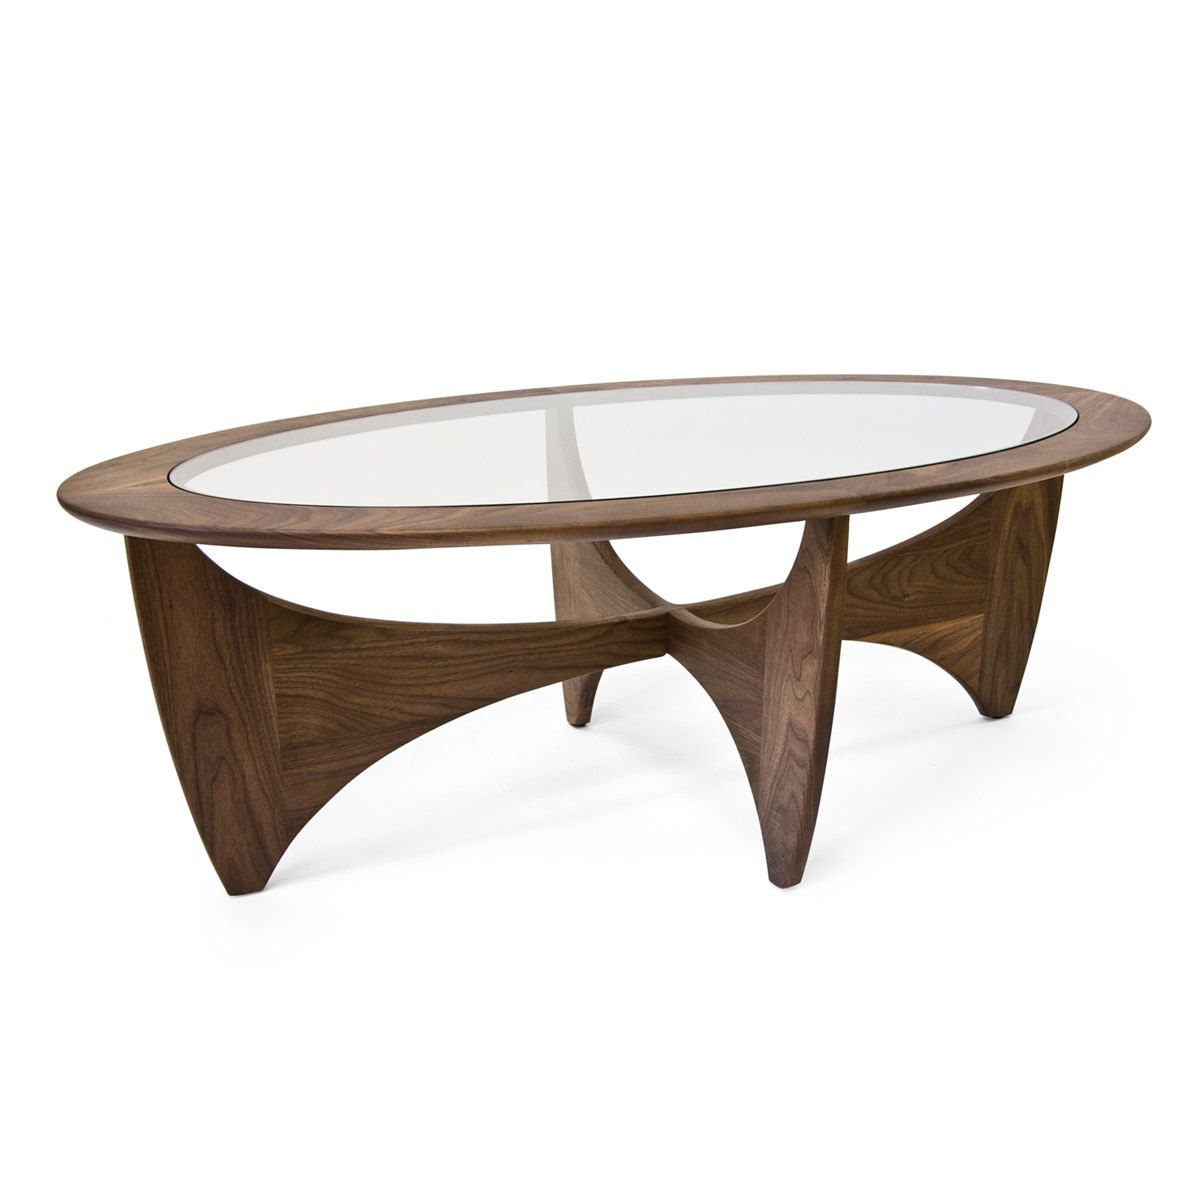 Trumpet Oval Coffee Table G Plan Coffee Table Oval Coffee Tables Coffee Table [ 1200 x 1200 Pixel ]